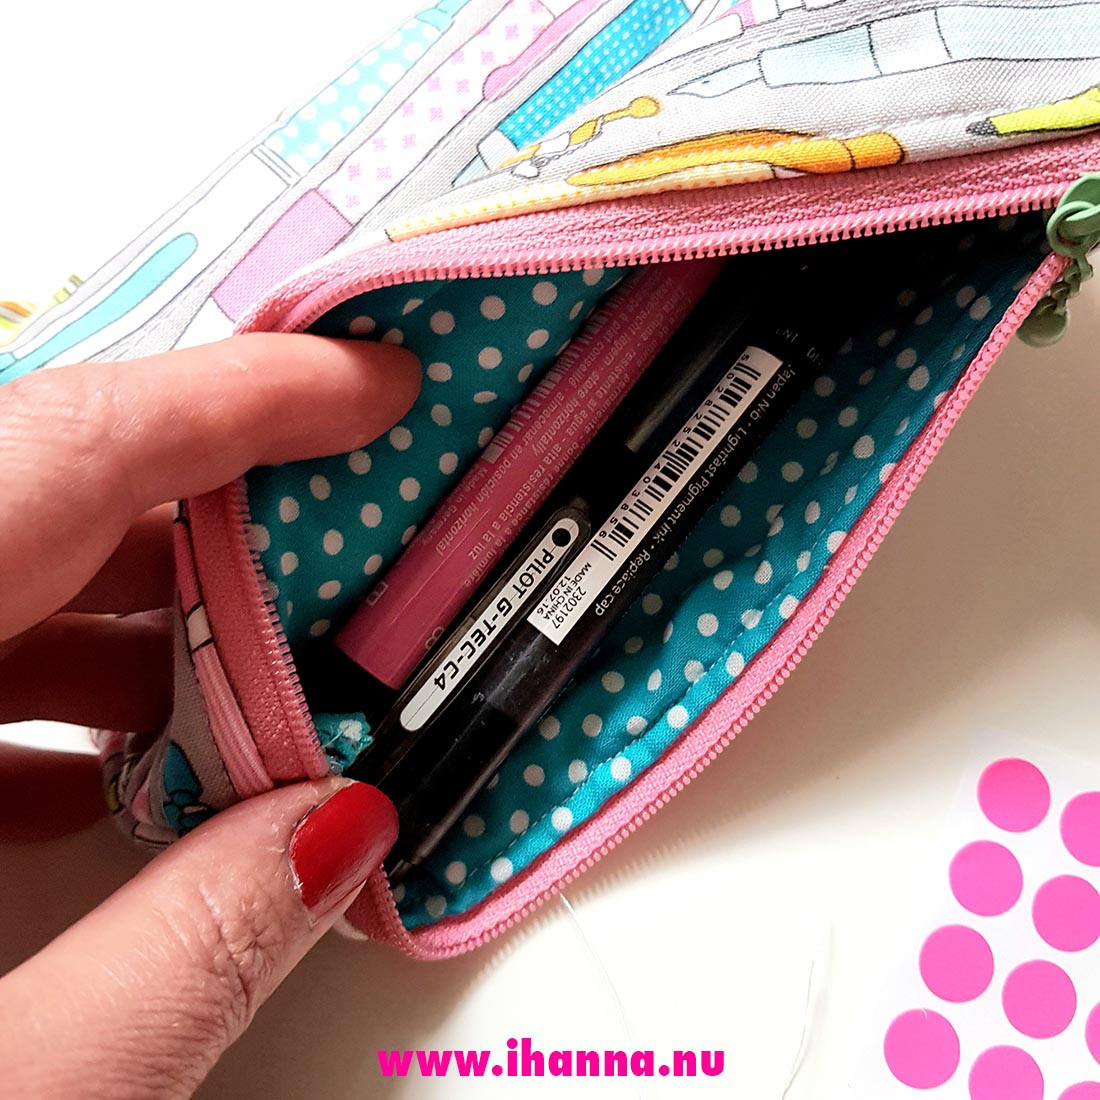 The inside of my pen case made by mom is polka dot says iHanna